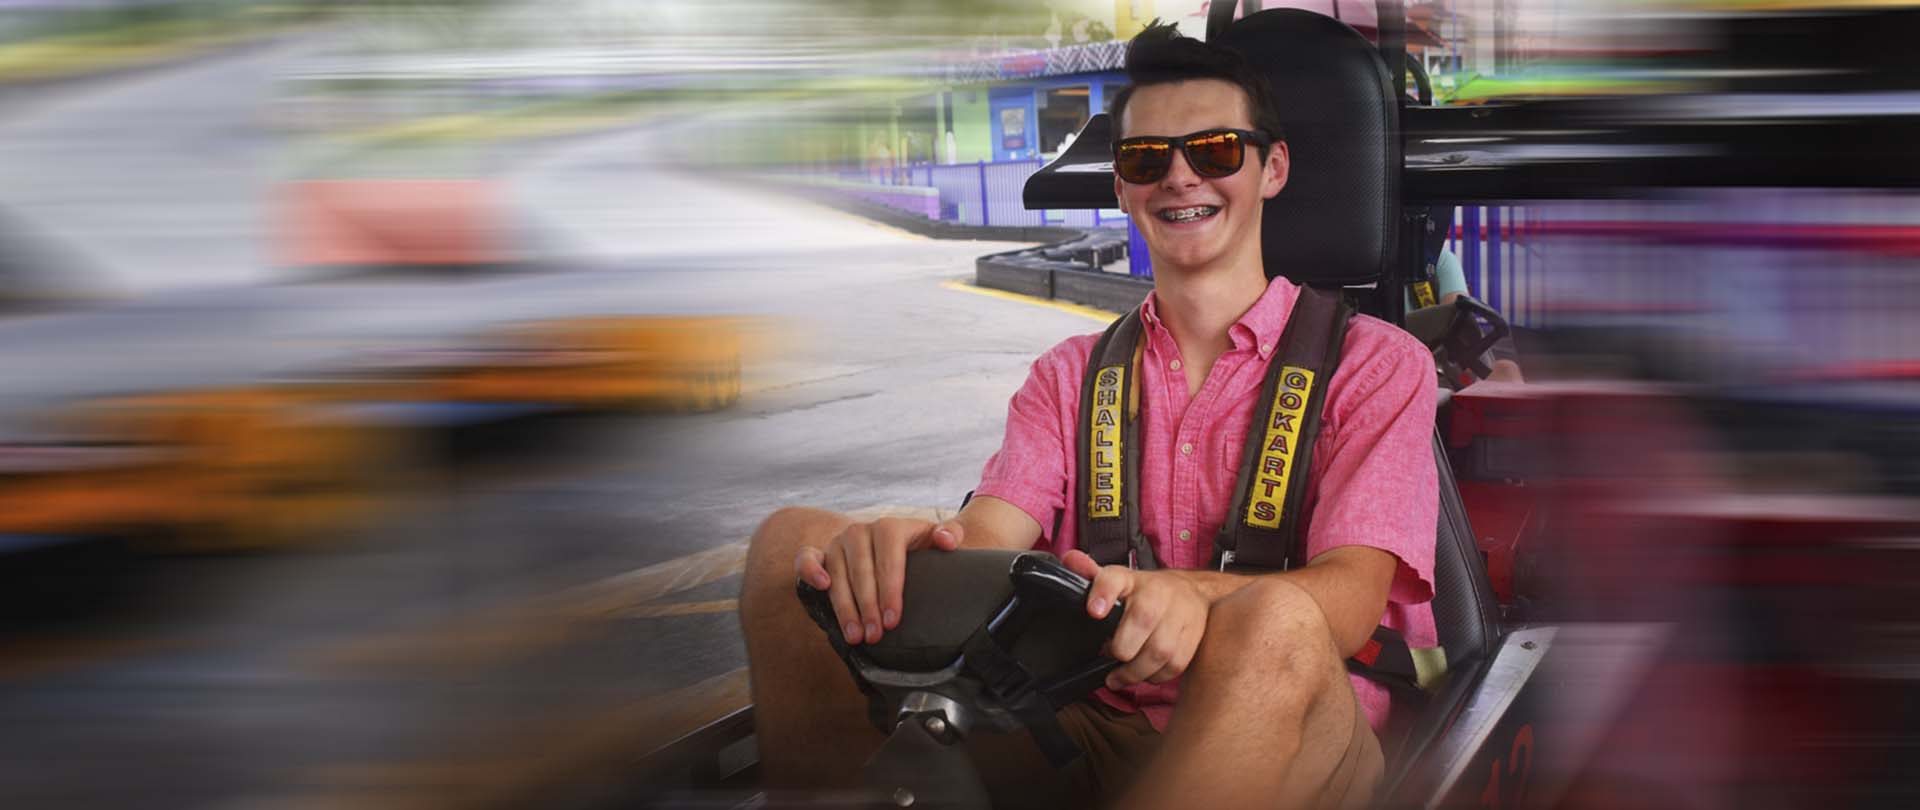 Go-Karts in Pigeon Forge